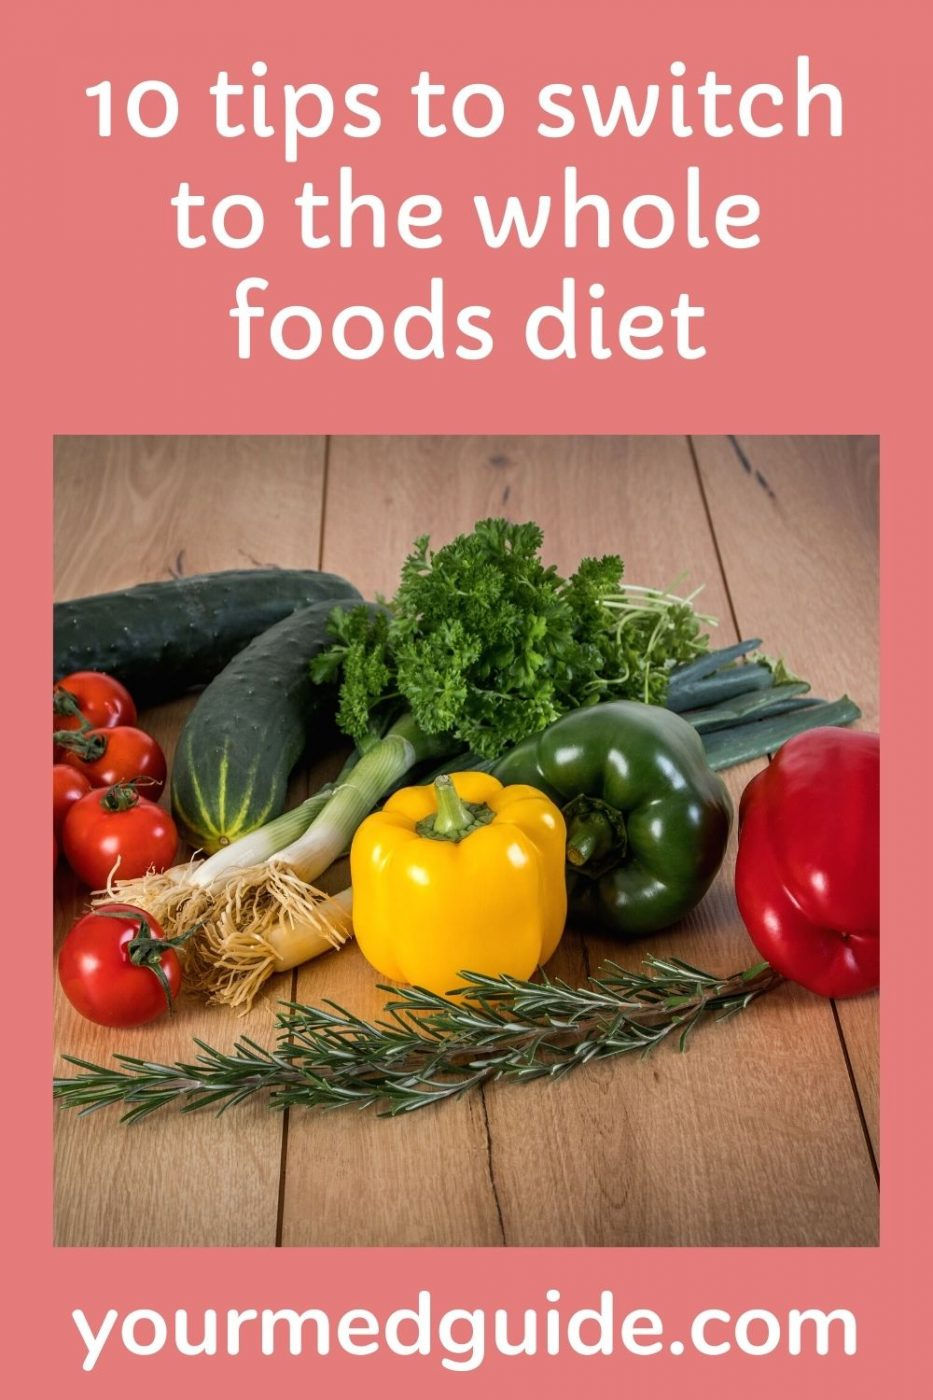 10 tips to switch to the whole foods diet